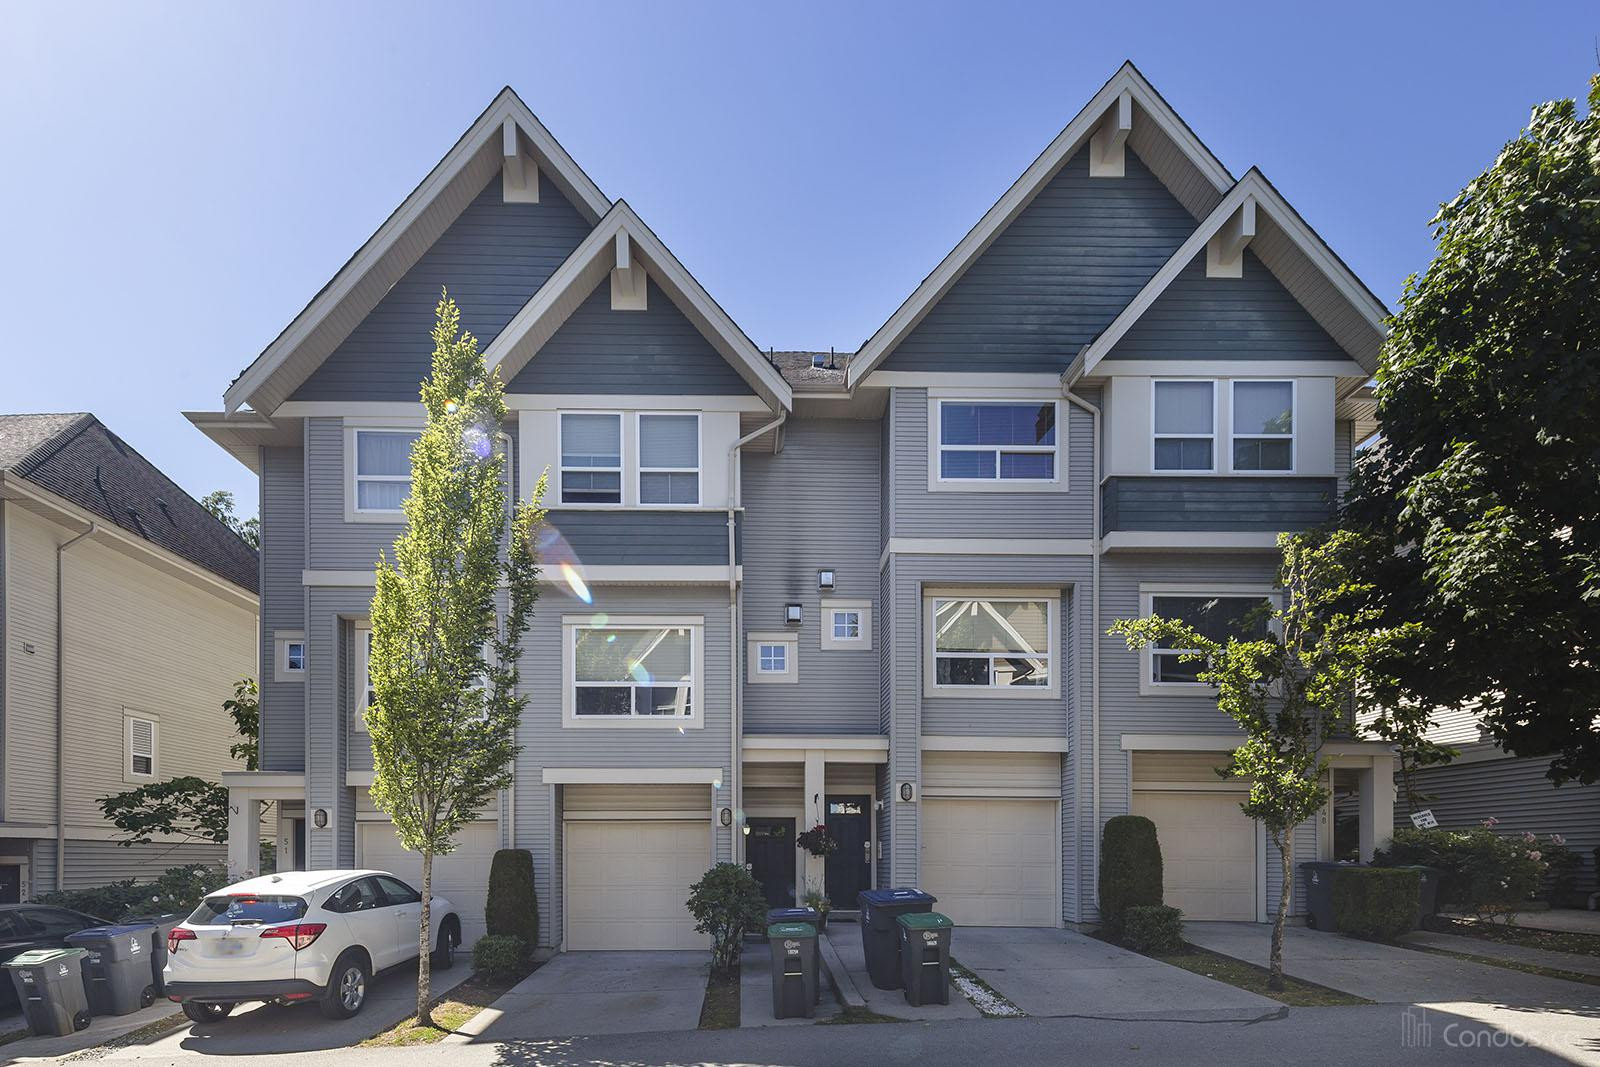 Springhill at 15065 58 Ave, Surrey 1